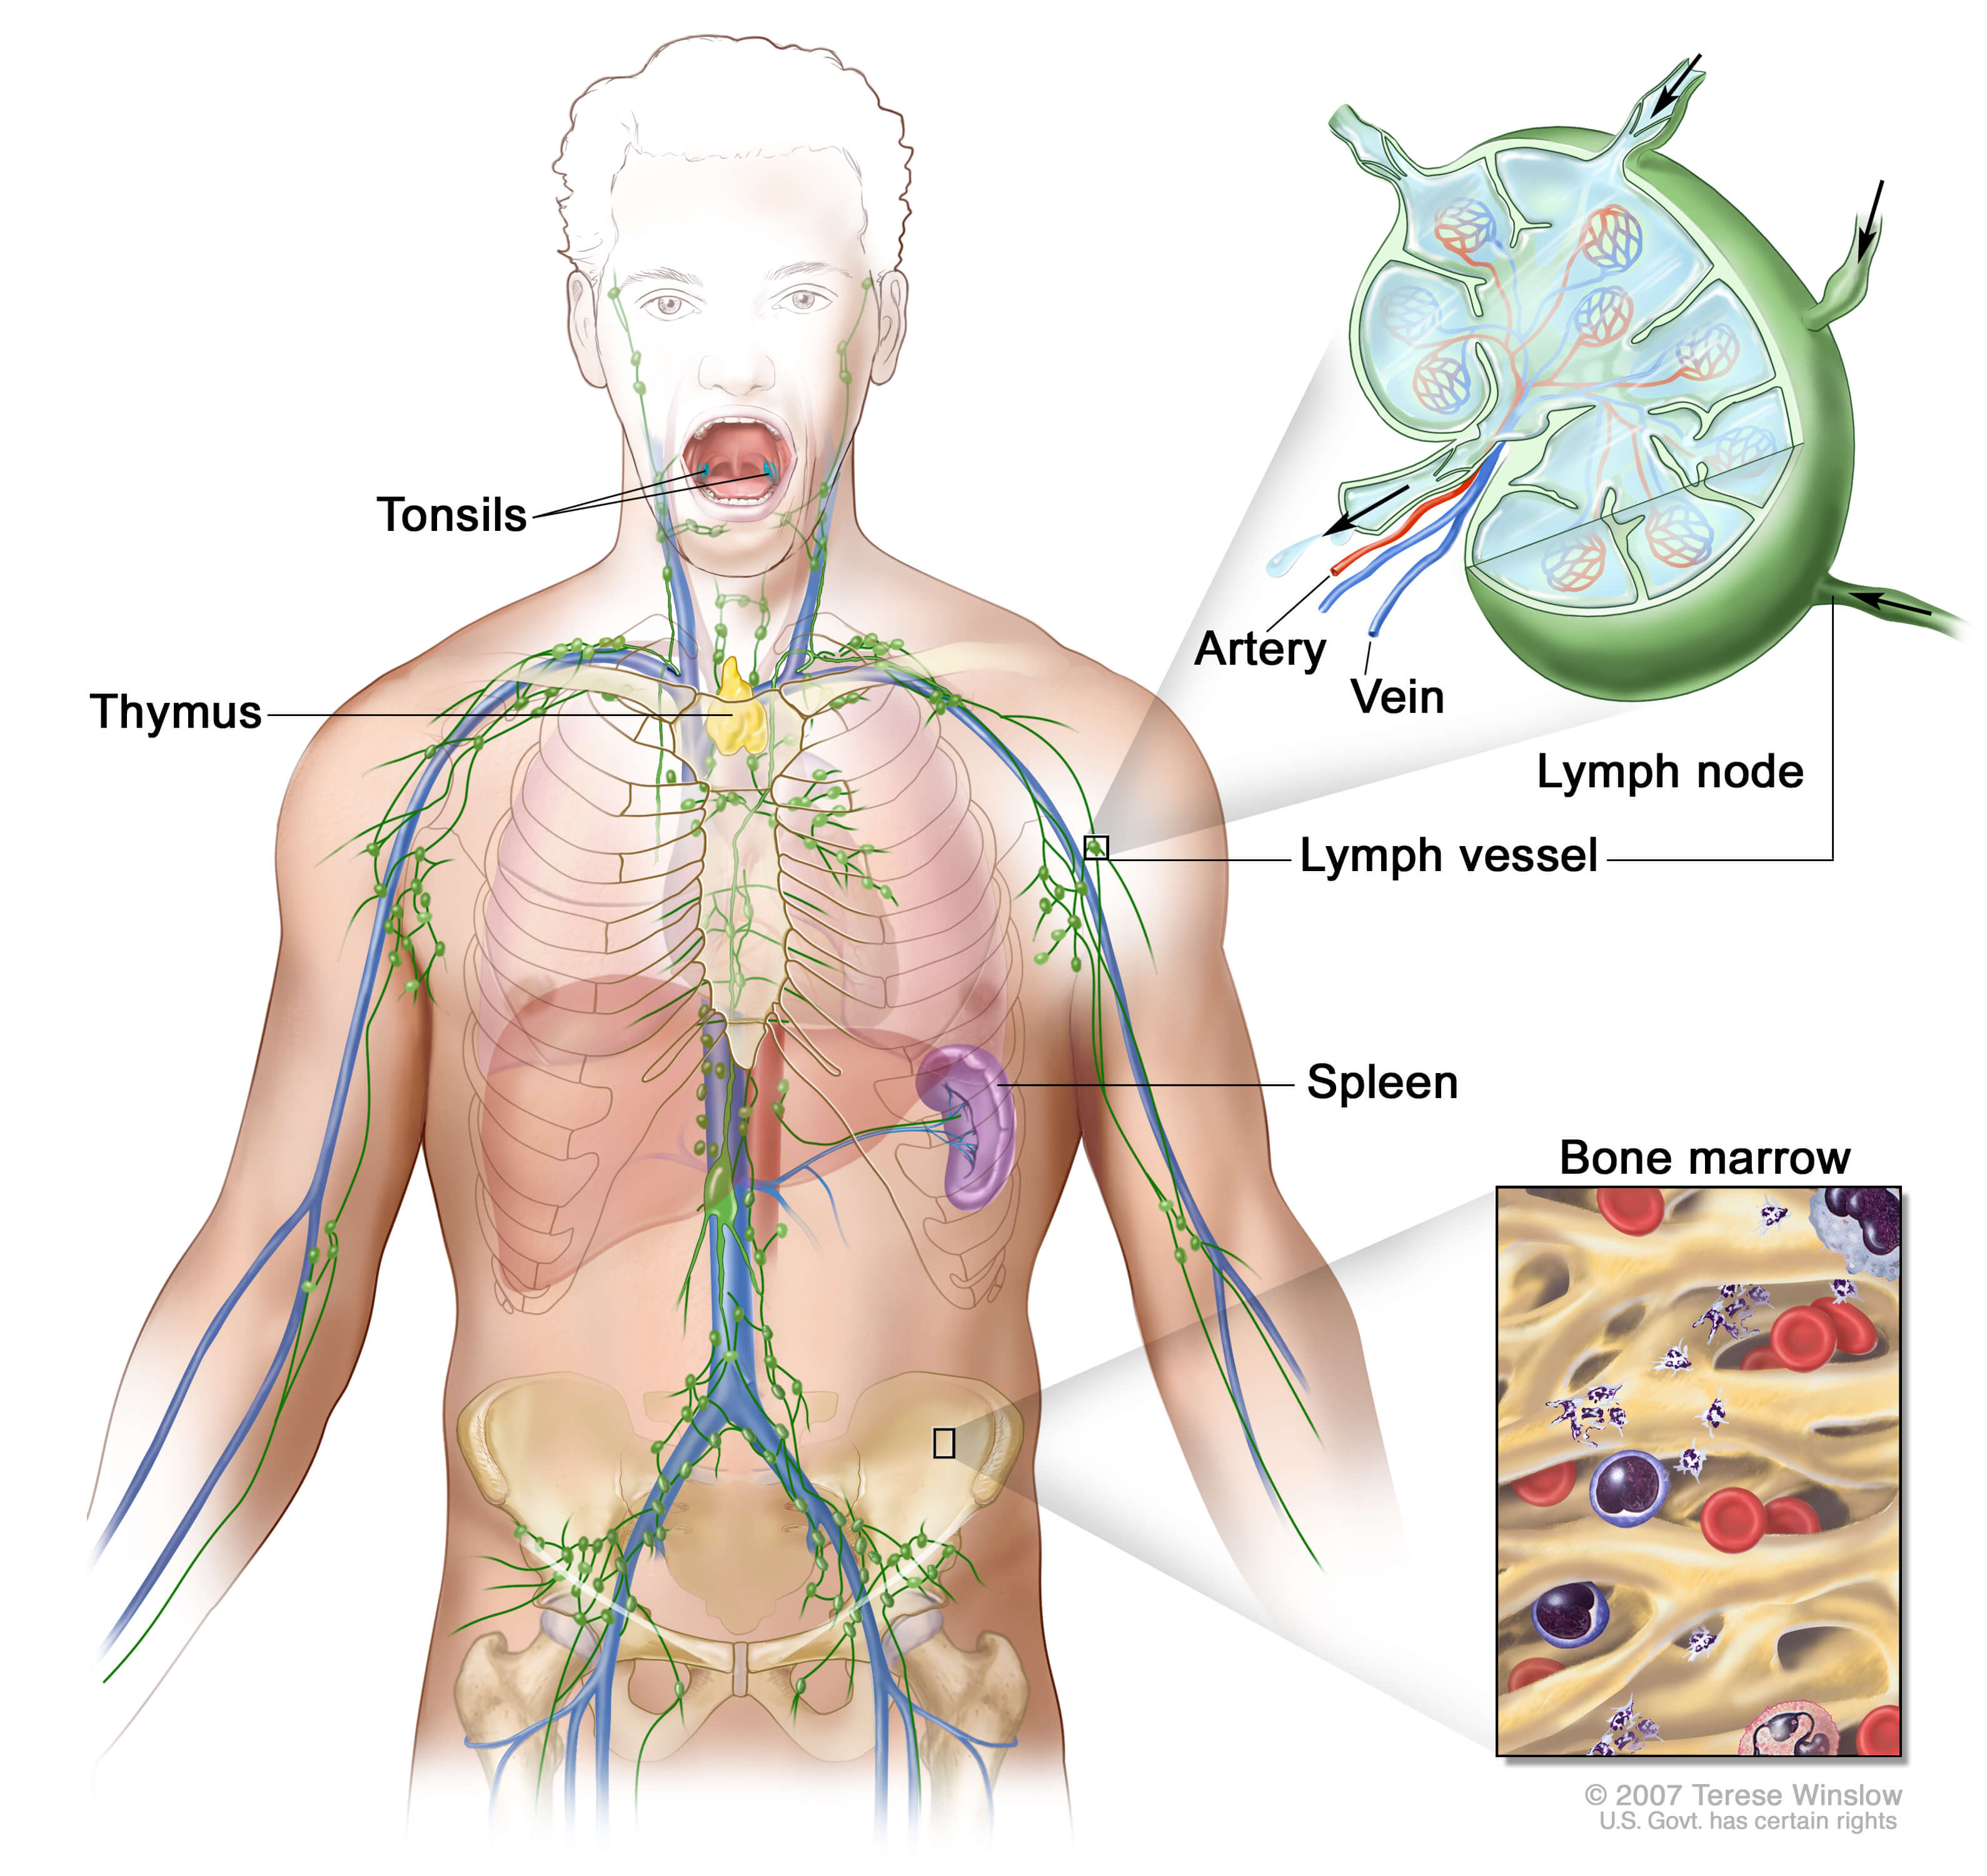 including lymph nodes tonsils thymus spleen and bone marrow